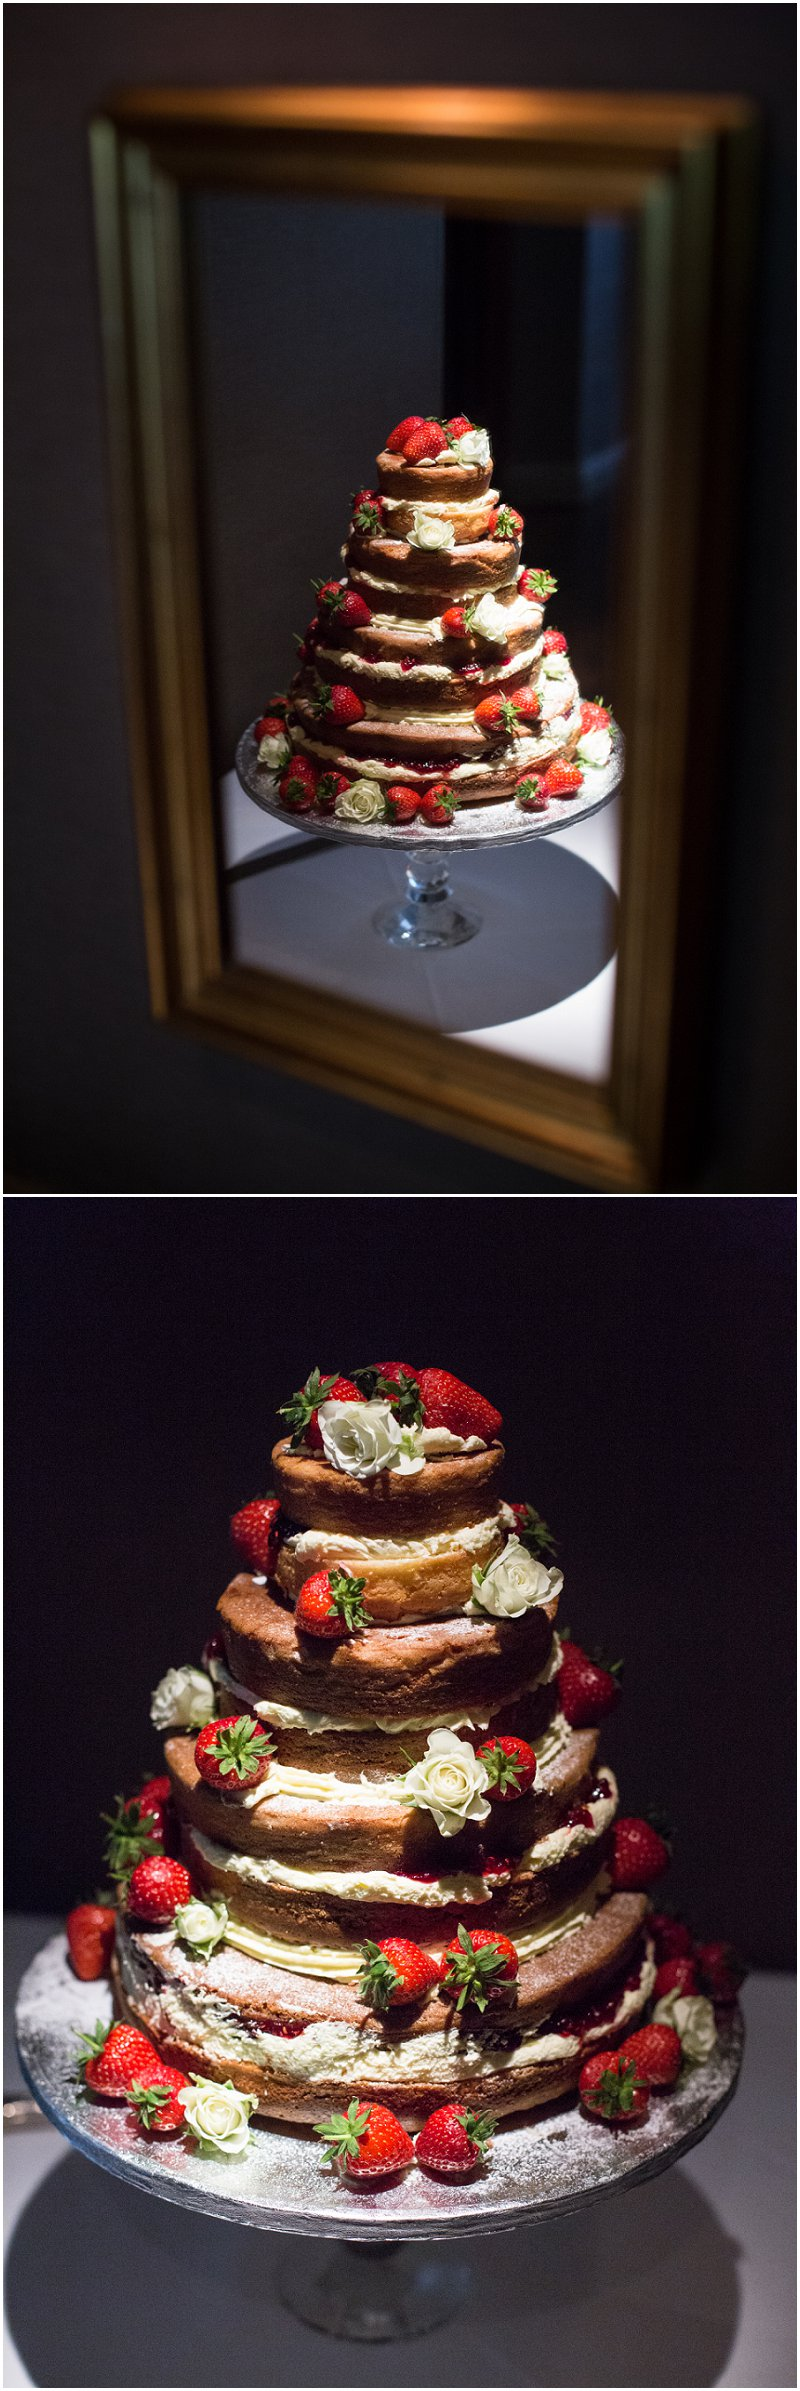 Wedding cake with Strawberries at Linthwaite House Hotel, Cumbria